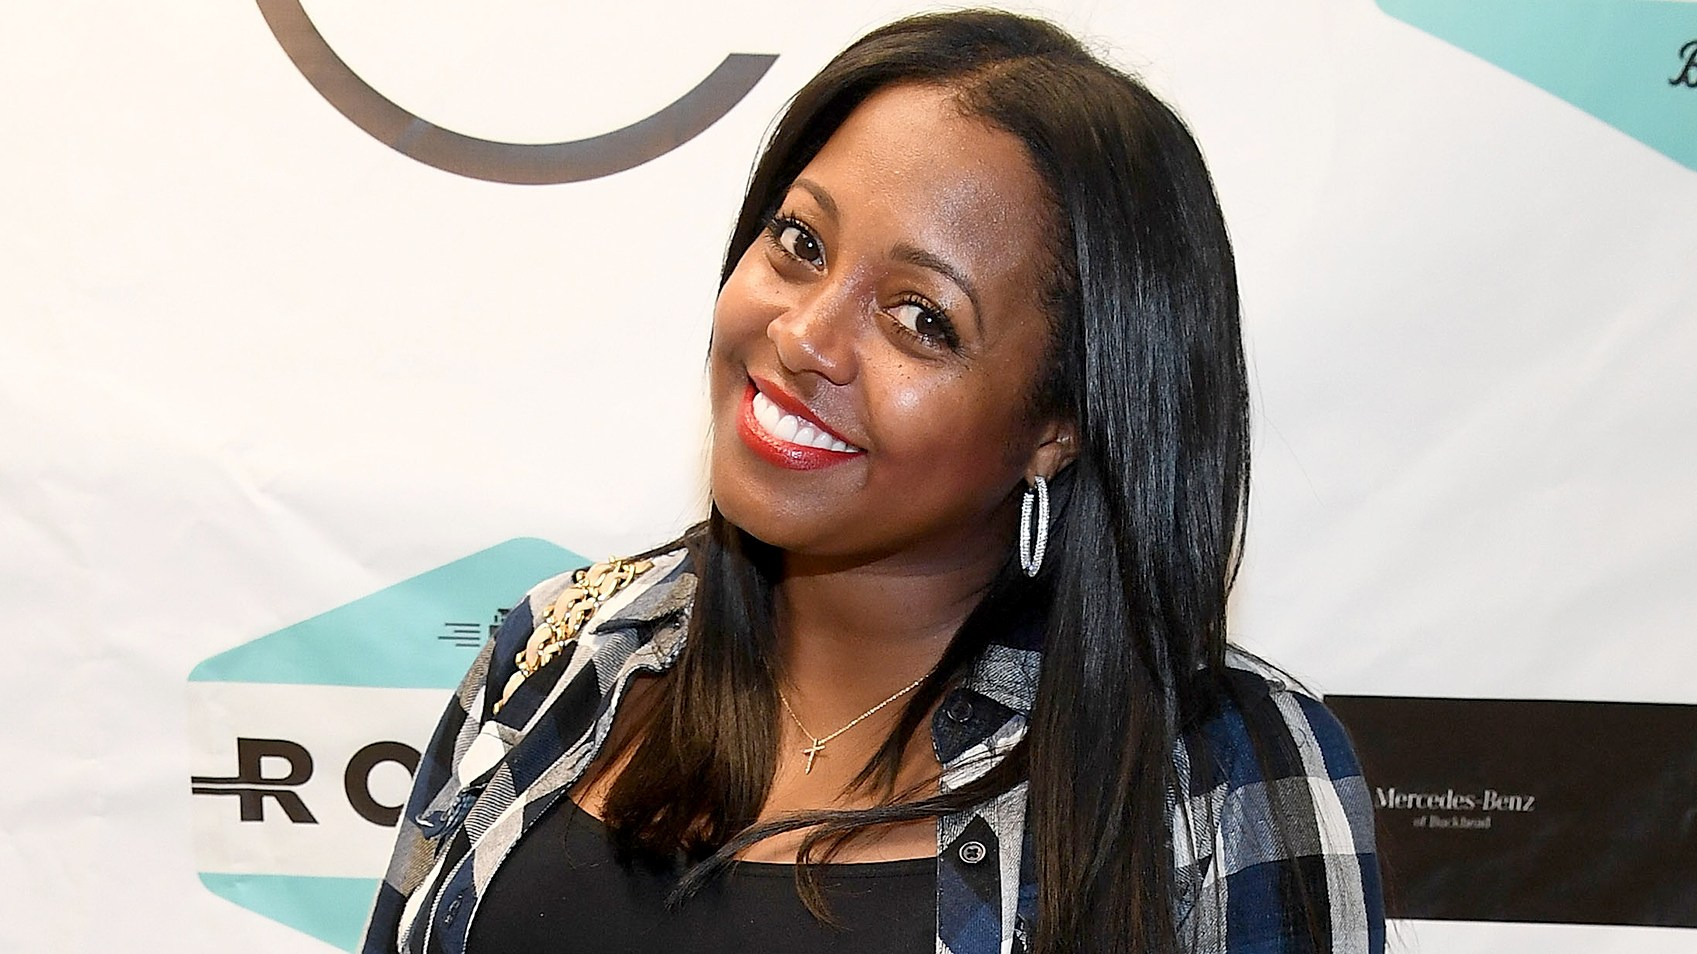 Keshia Knight Pulliam attends LudaDay Celebrity Basketball Game at Morehouse College Forbes Arena on September 4, 2016 in Atlanta, Georgia.